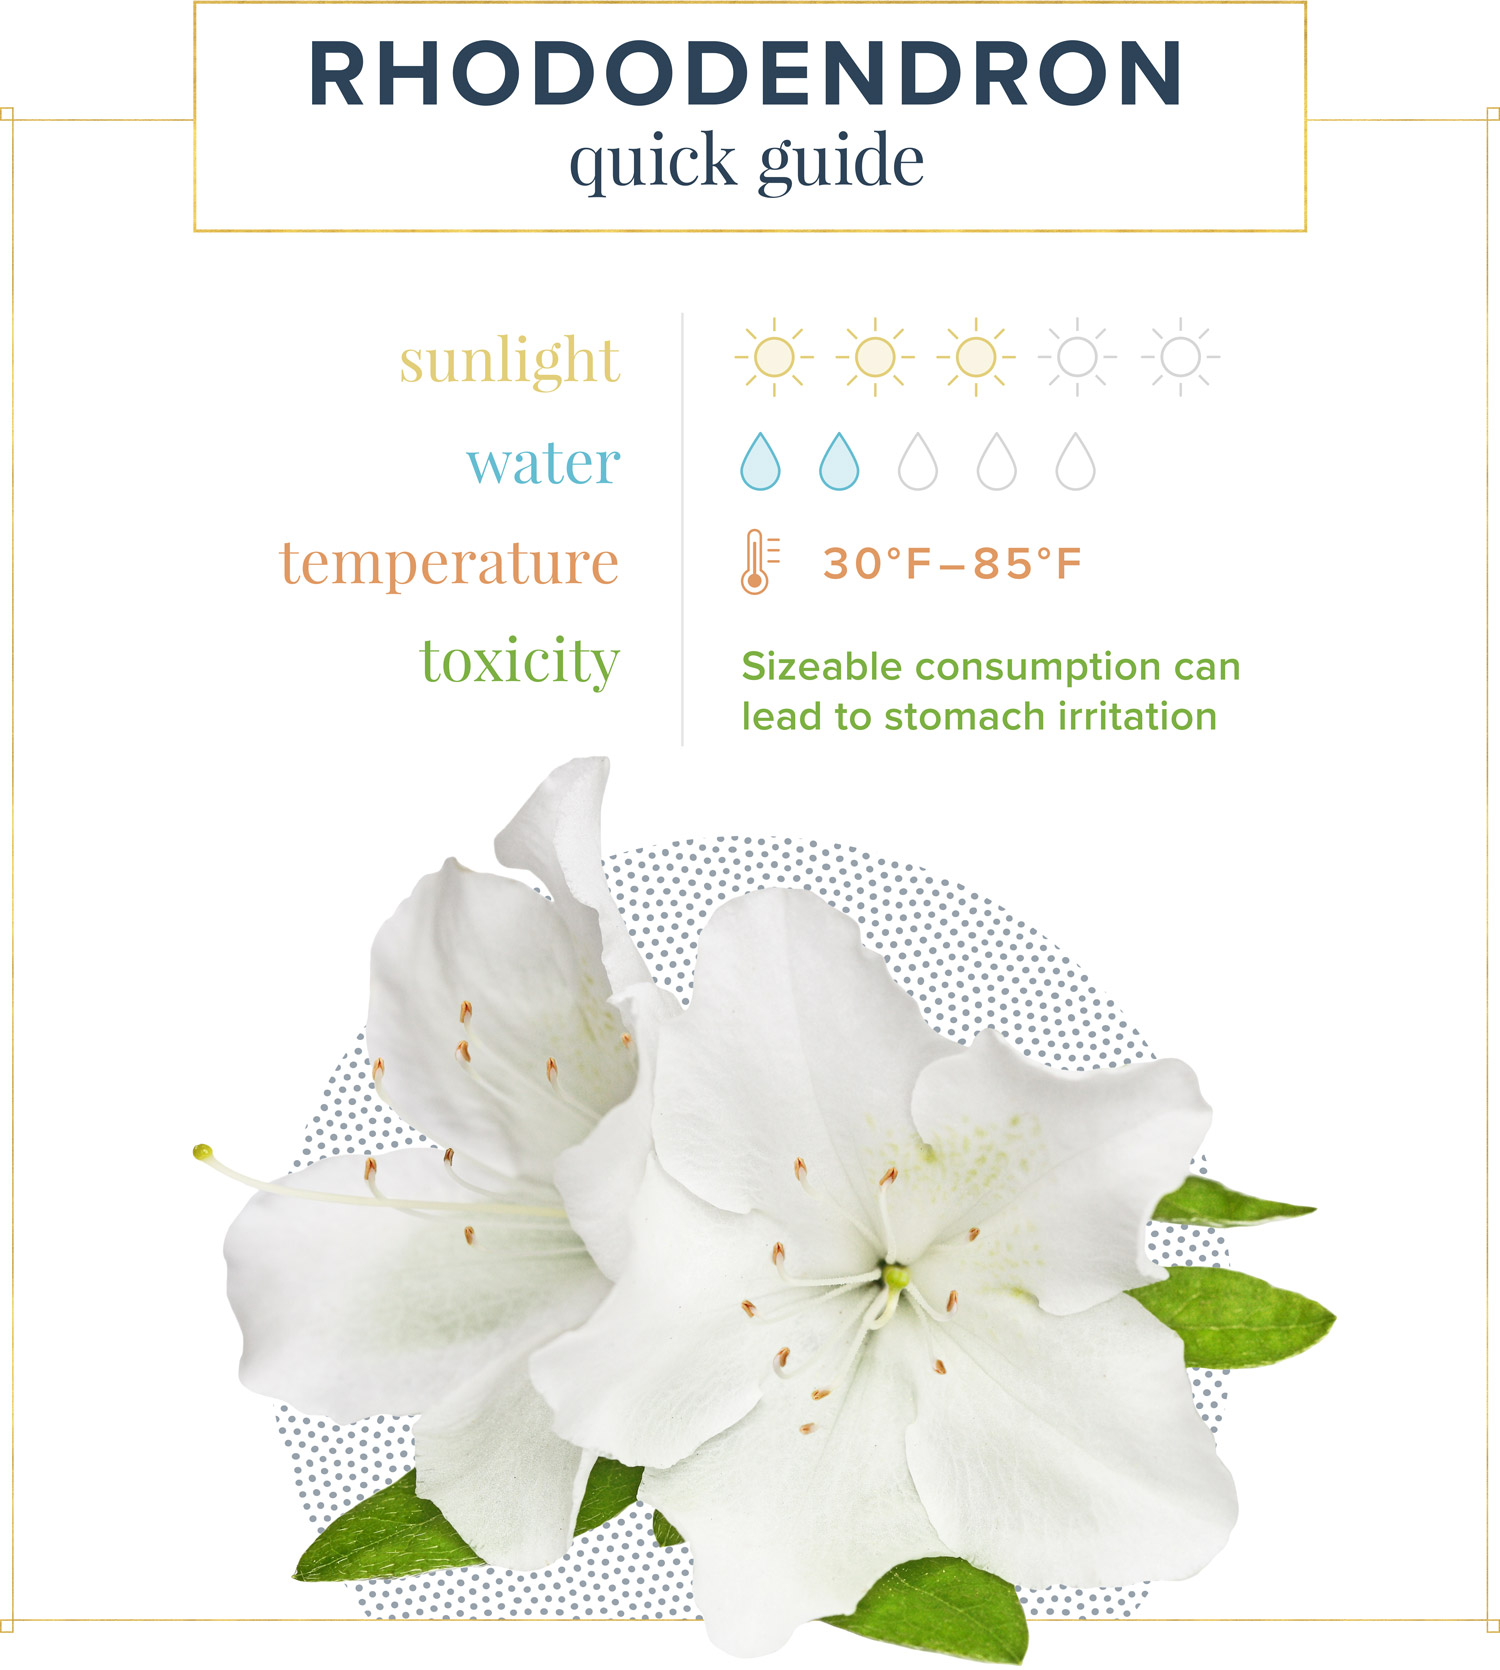 Rhododendron care quick guide. Sunlight: 3 suns out of 5 Water: 2 water drops out of 5 Temperature: 30ºF-85ºF Toxicity: Sizeable consumption can lead to stomach irritation